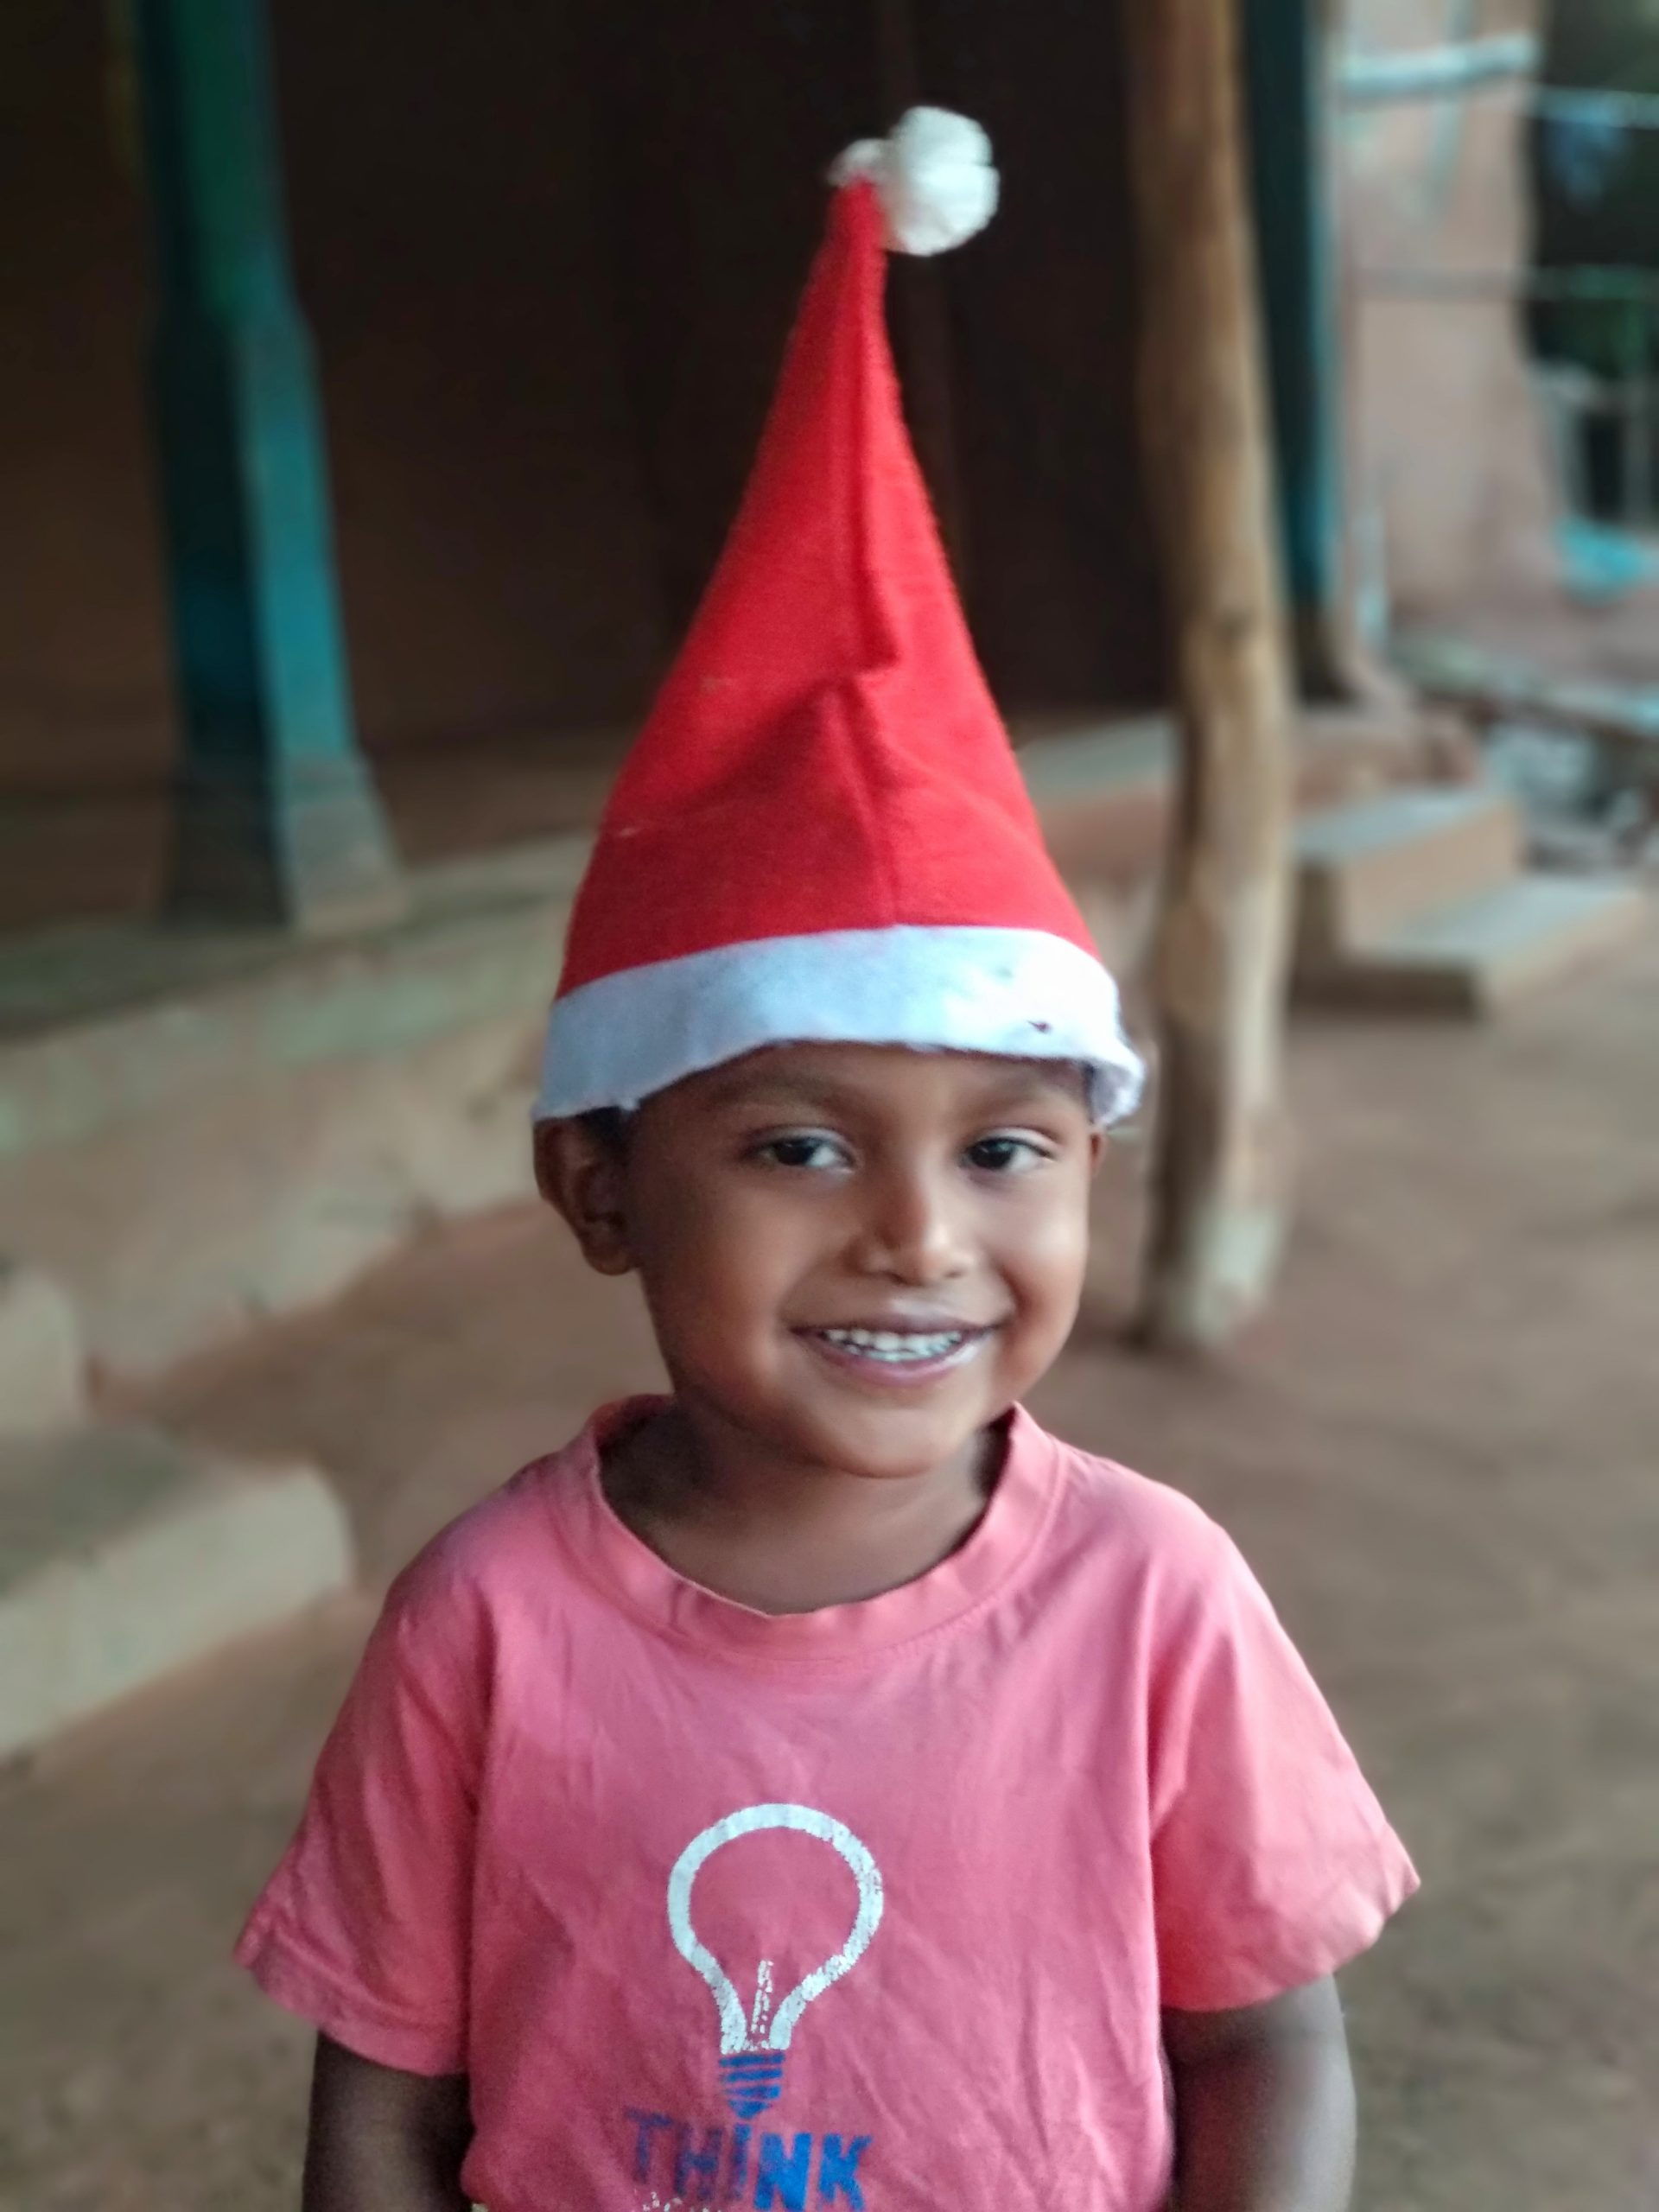 A kid celebrating Christmas